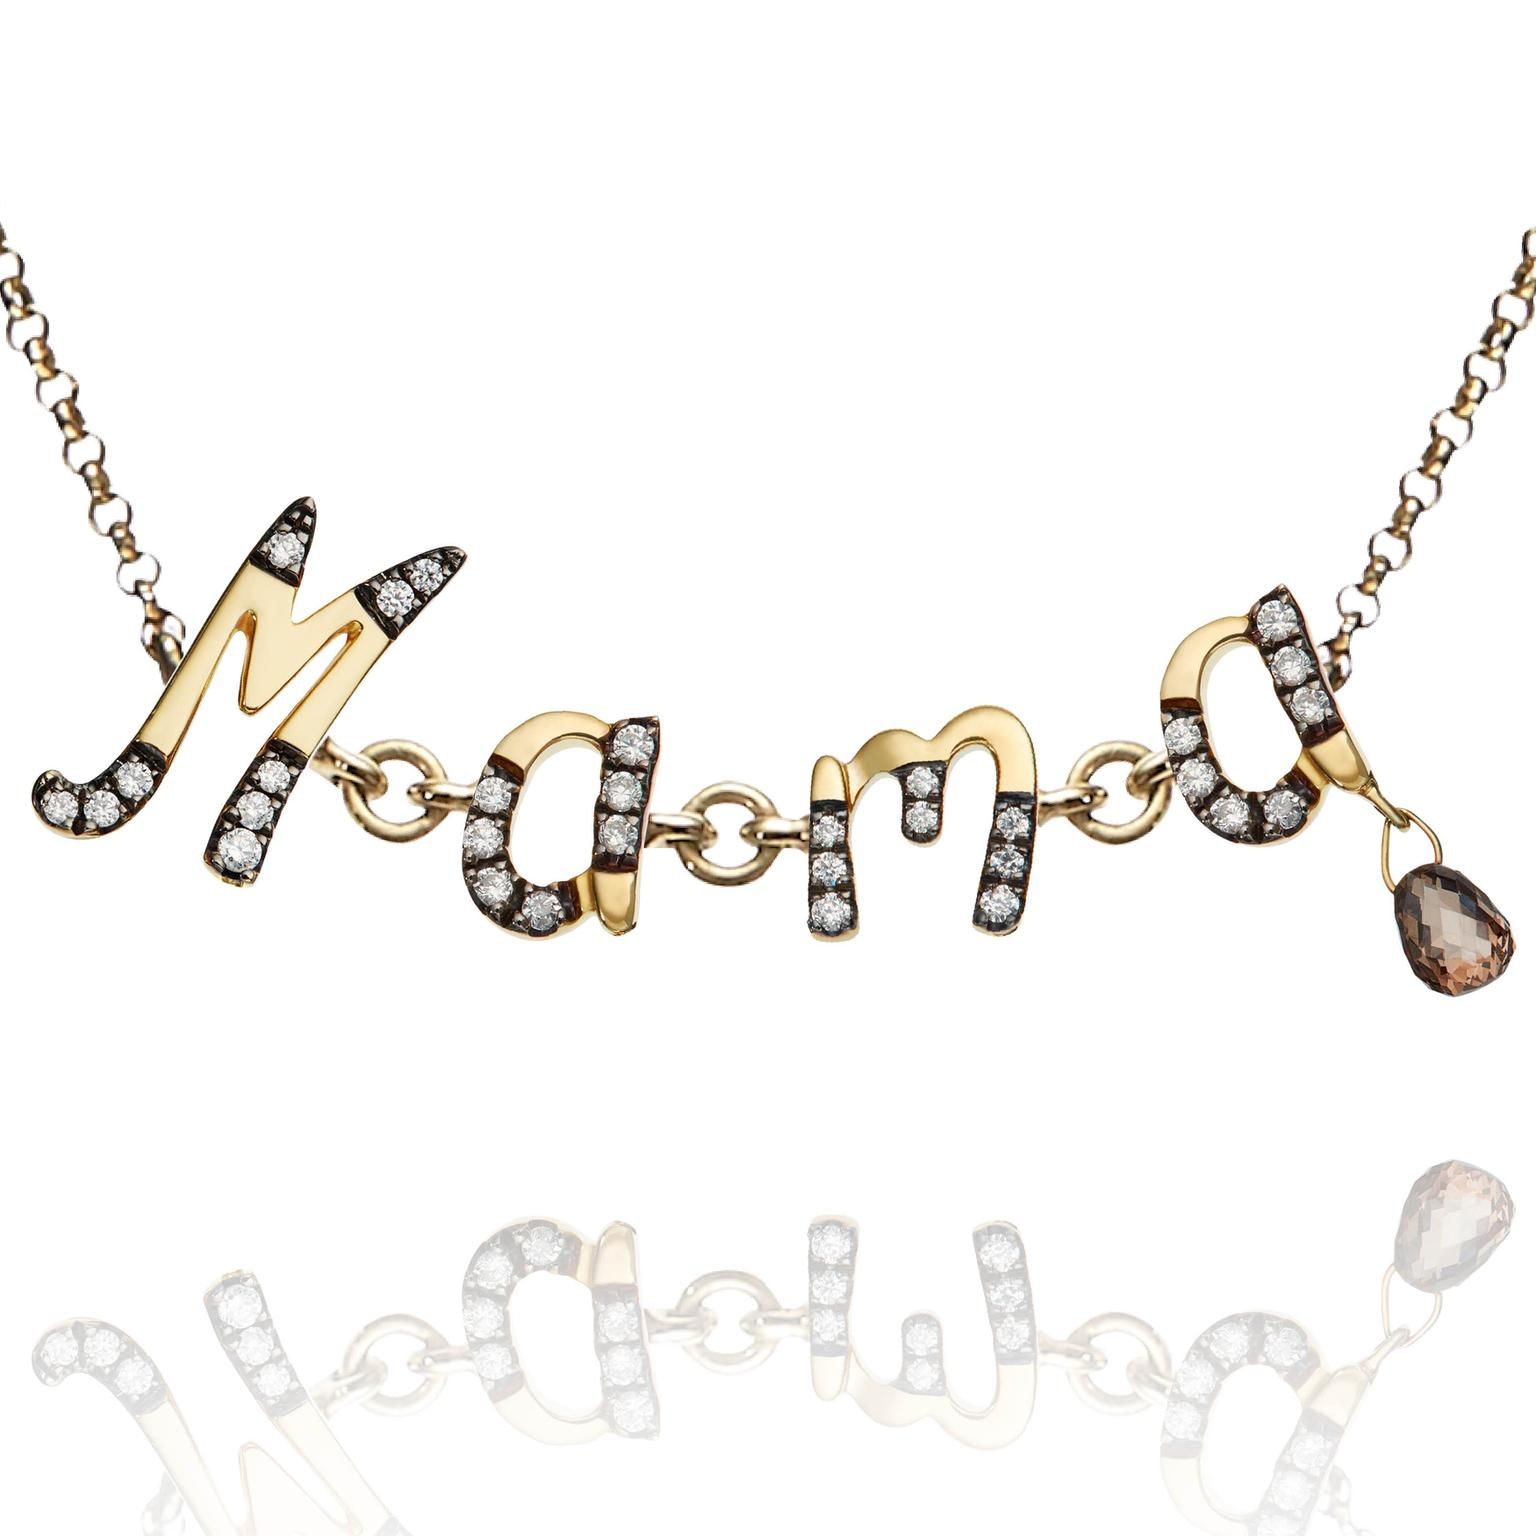 Annoushka bespoke Chain Letters necklace